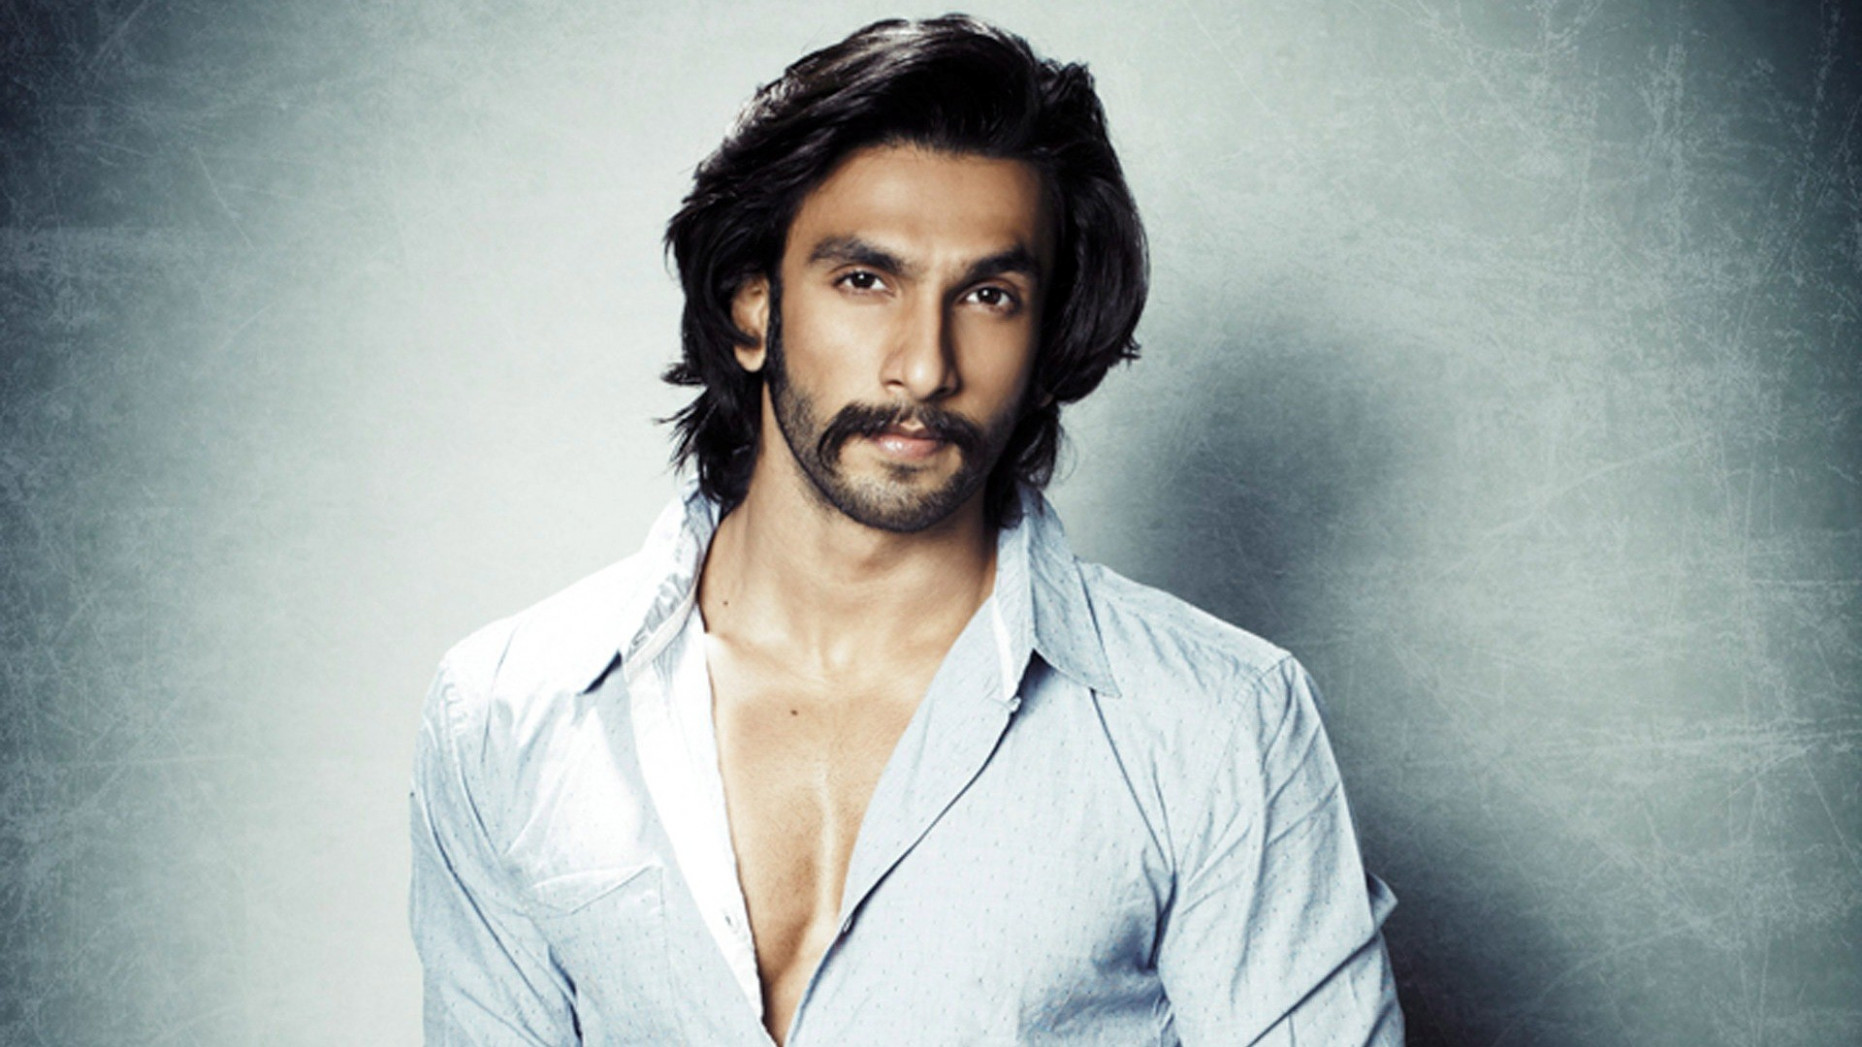 Ranveer Singh wallpapers (51 Wallpapers) – Art Wallpapers